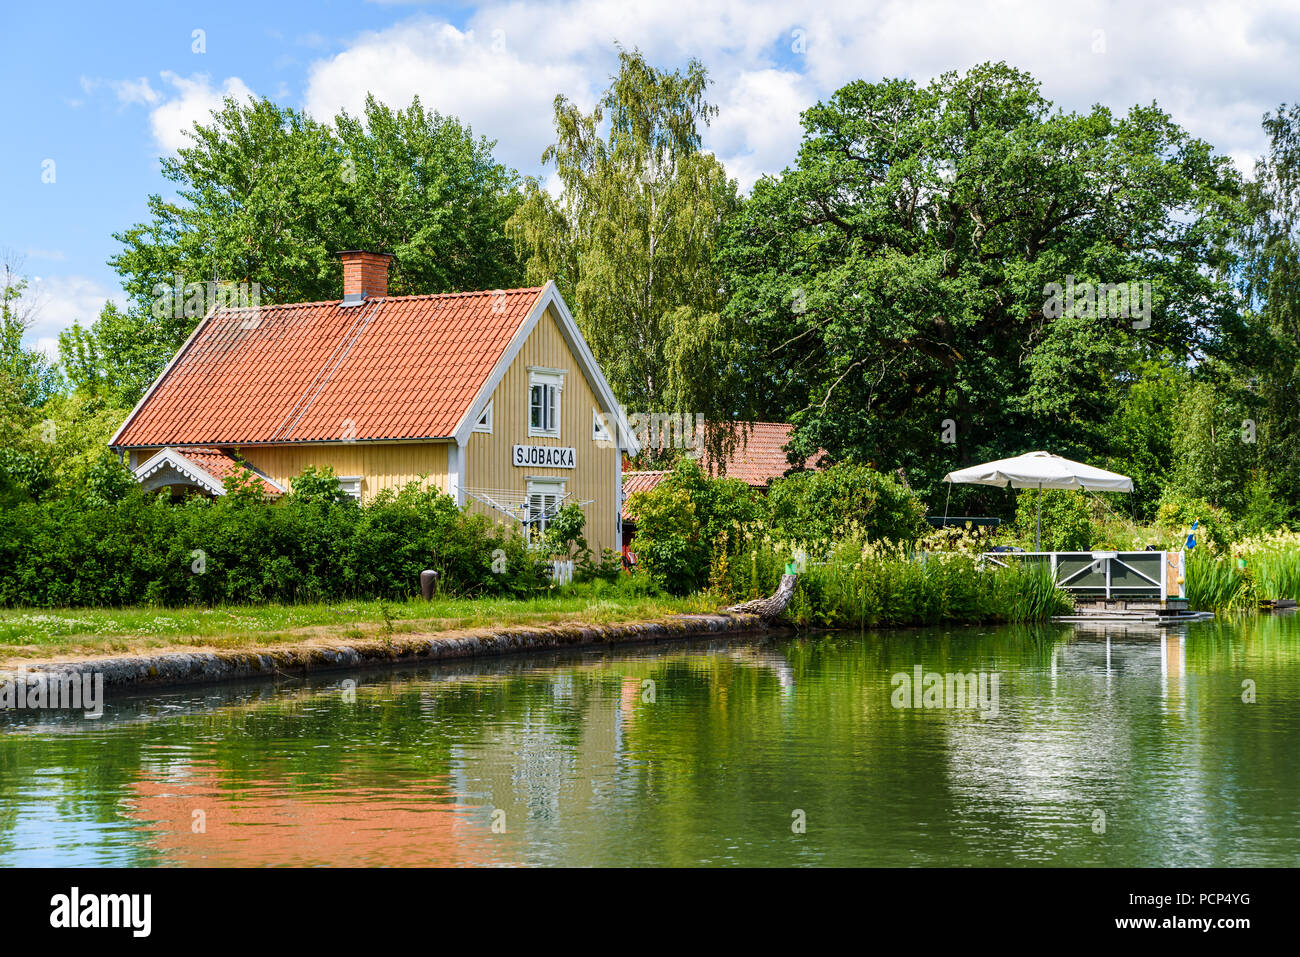 Sjobacka, Sweden - June 30, 2018: An ordinary day along the Gota canal. Here the house where the Sjobacka bridge guard lived in the old days. - Stock Image